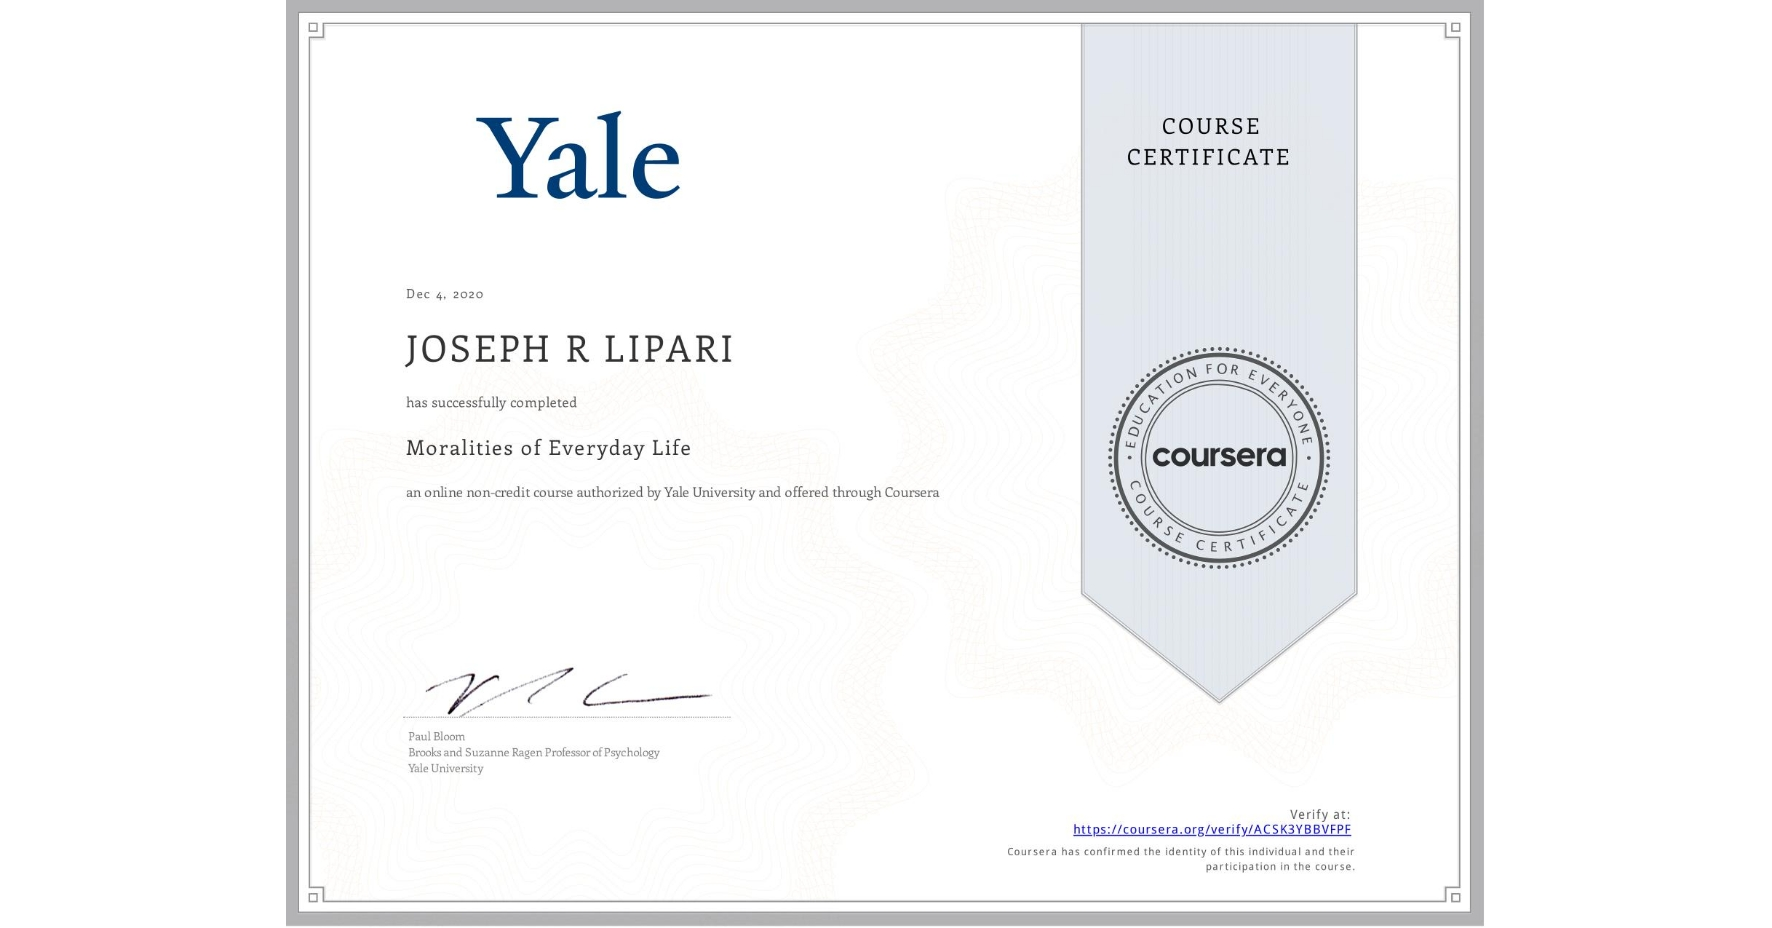 View certificate for JOSEPH R  LIPARI, Moralities of Everyday Life, an online non-credit course authorized by Yale University and offered through Coursera